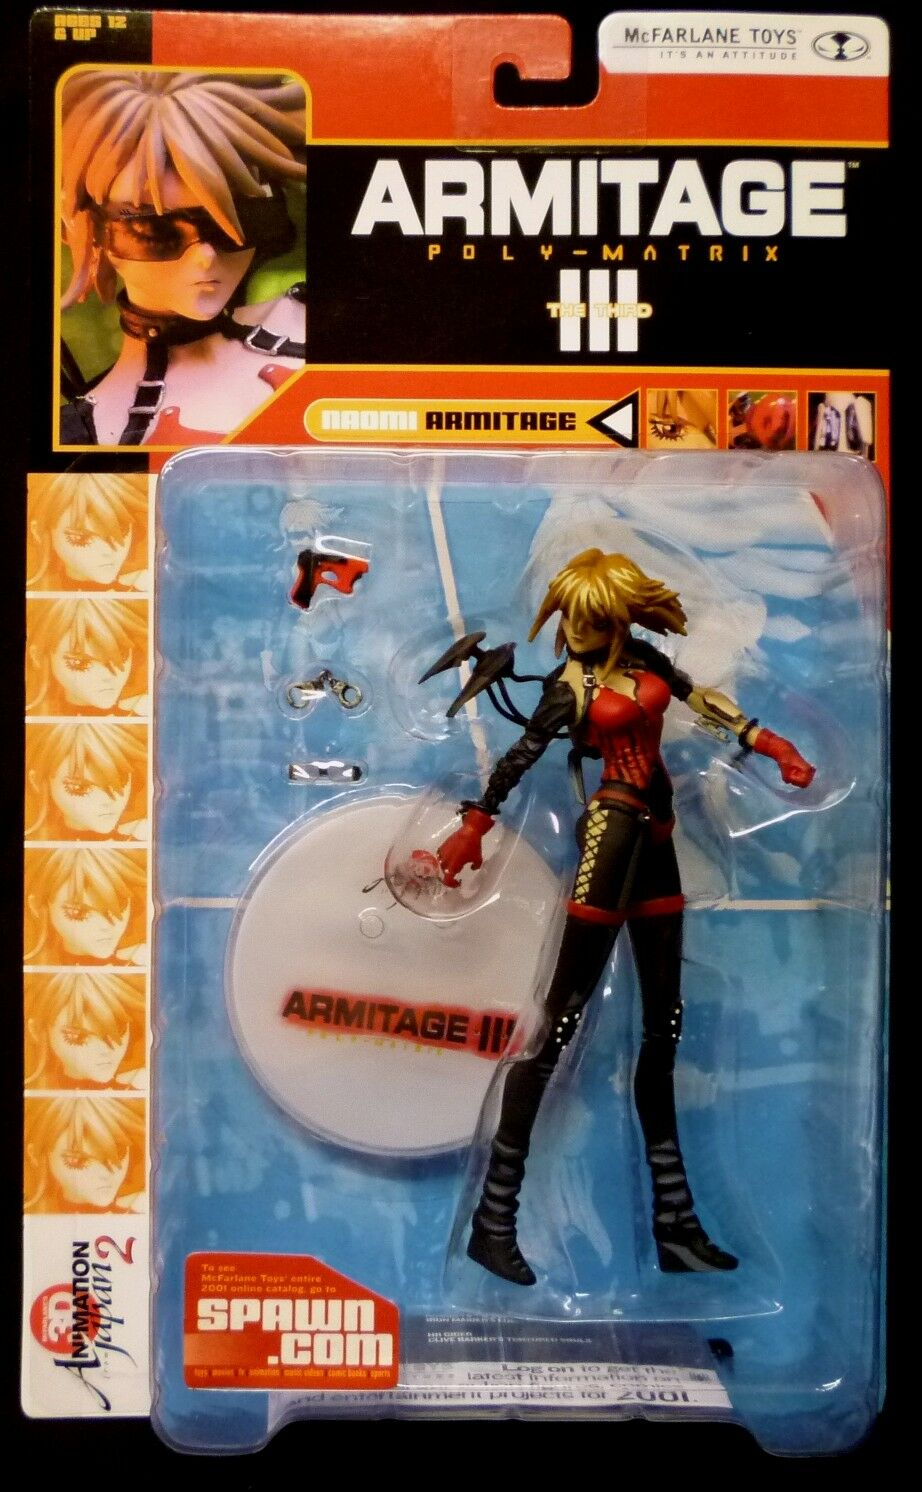 3D Animation Japan Series 2 Anime Anime Anime 6 Figure Set New 2001 Special Price McFarlane ac55d2